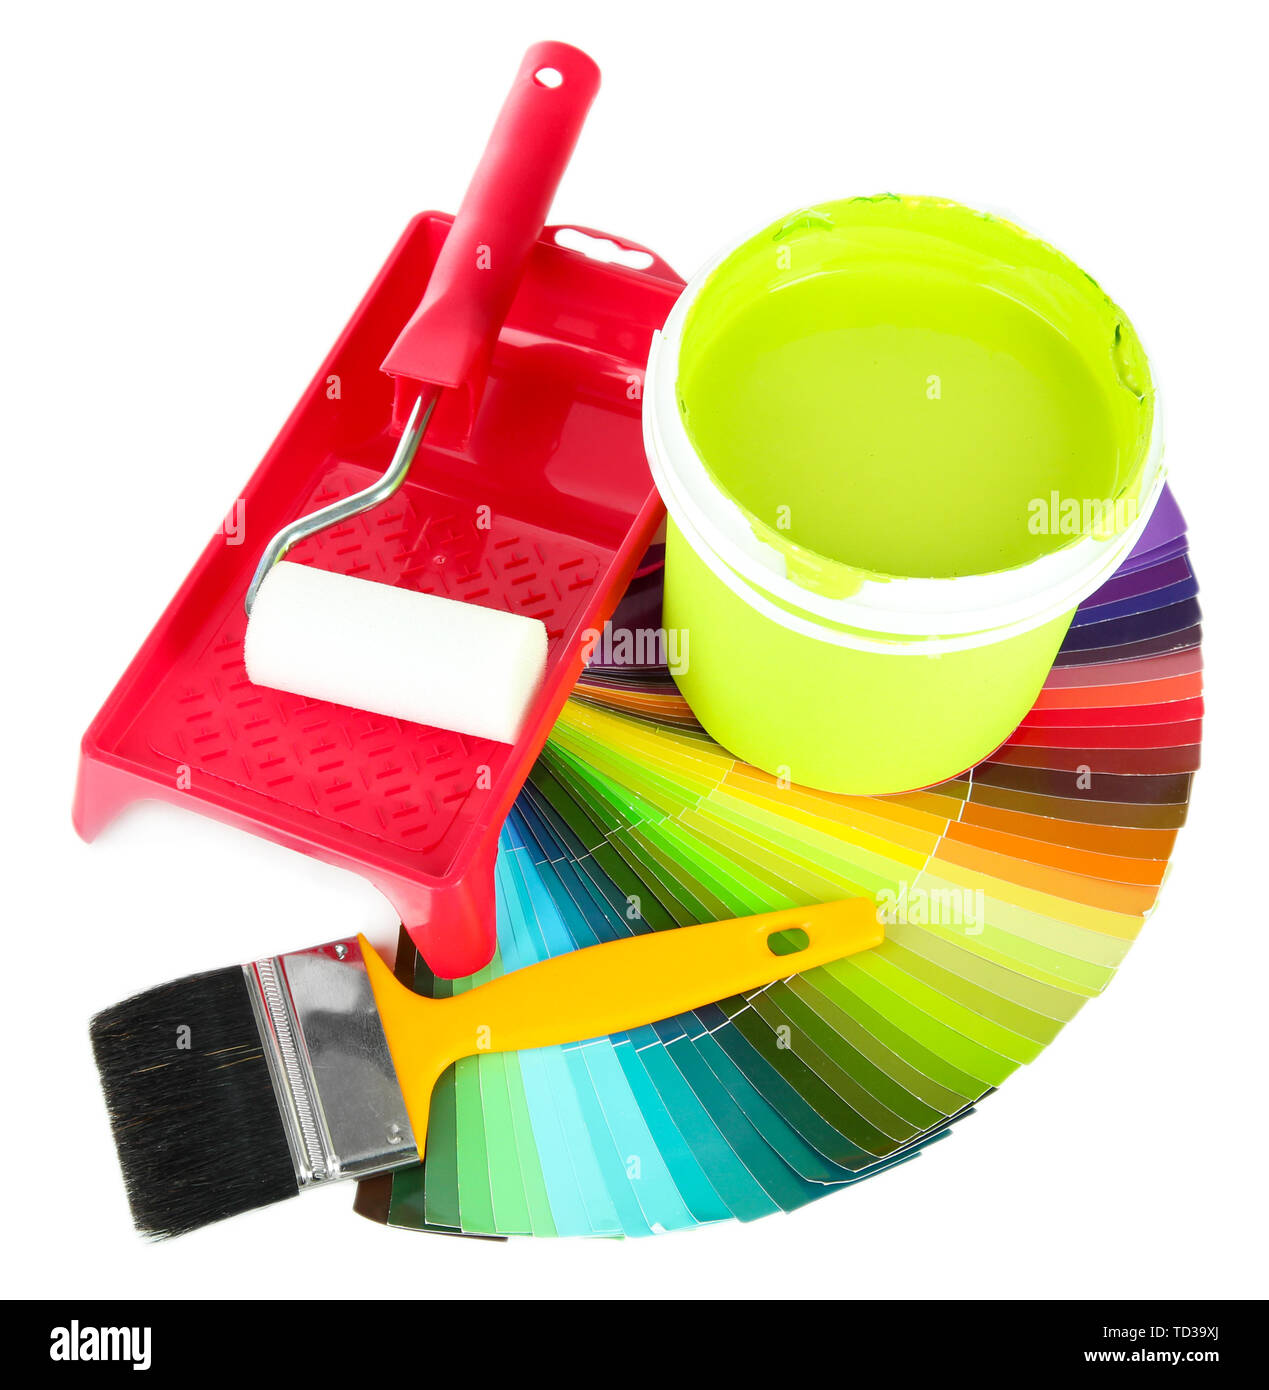 Set for painting: paint pot, brushes, paint-roller and palette of colors isolated on white - Stock Image